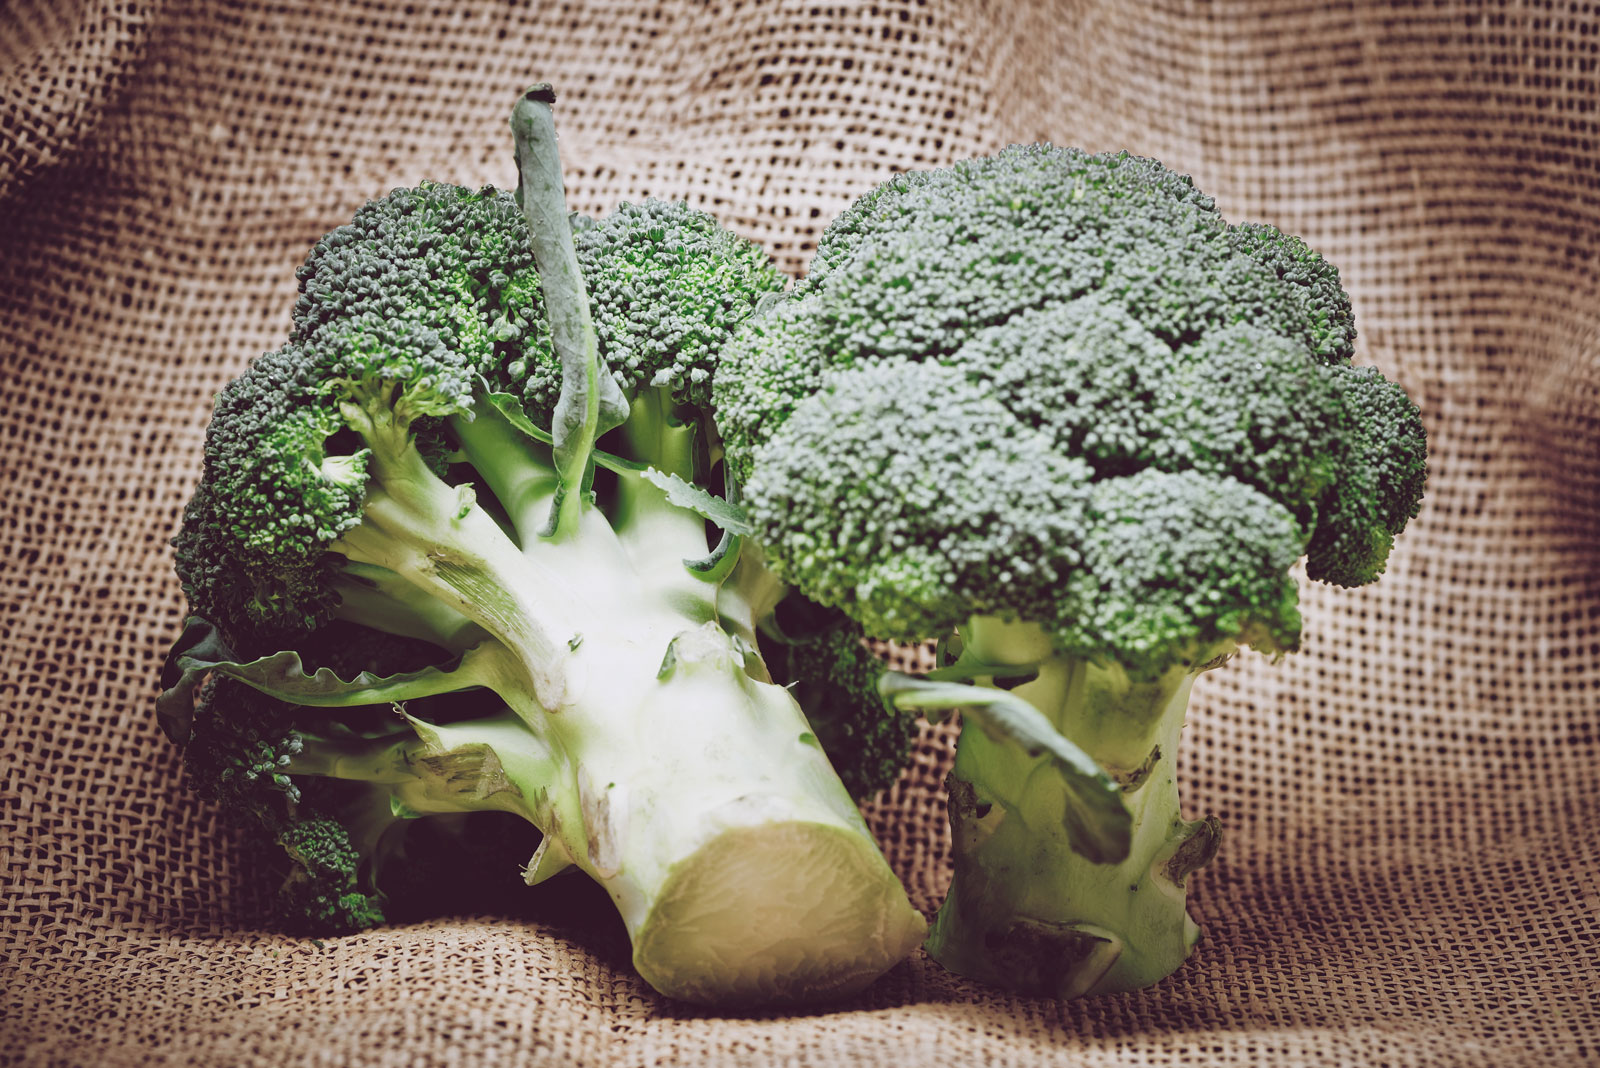 Broccoli | The Best Fruits and Vegetables for Juicing With 3 Ingredients